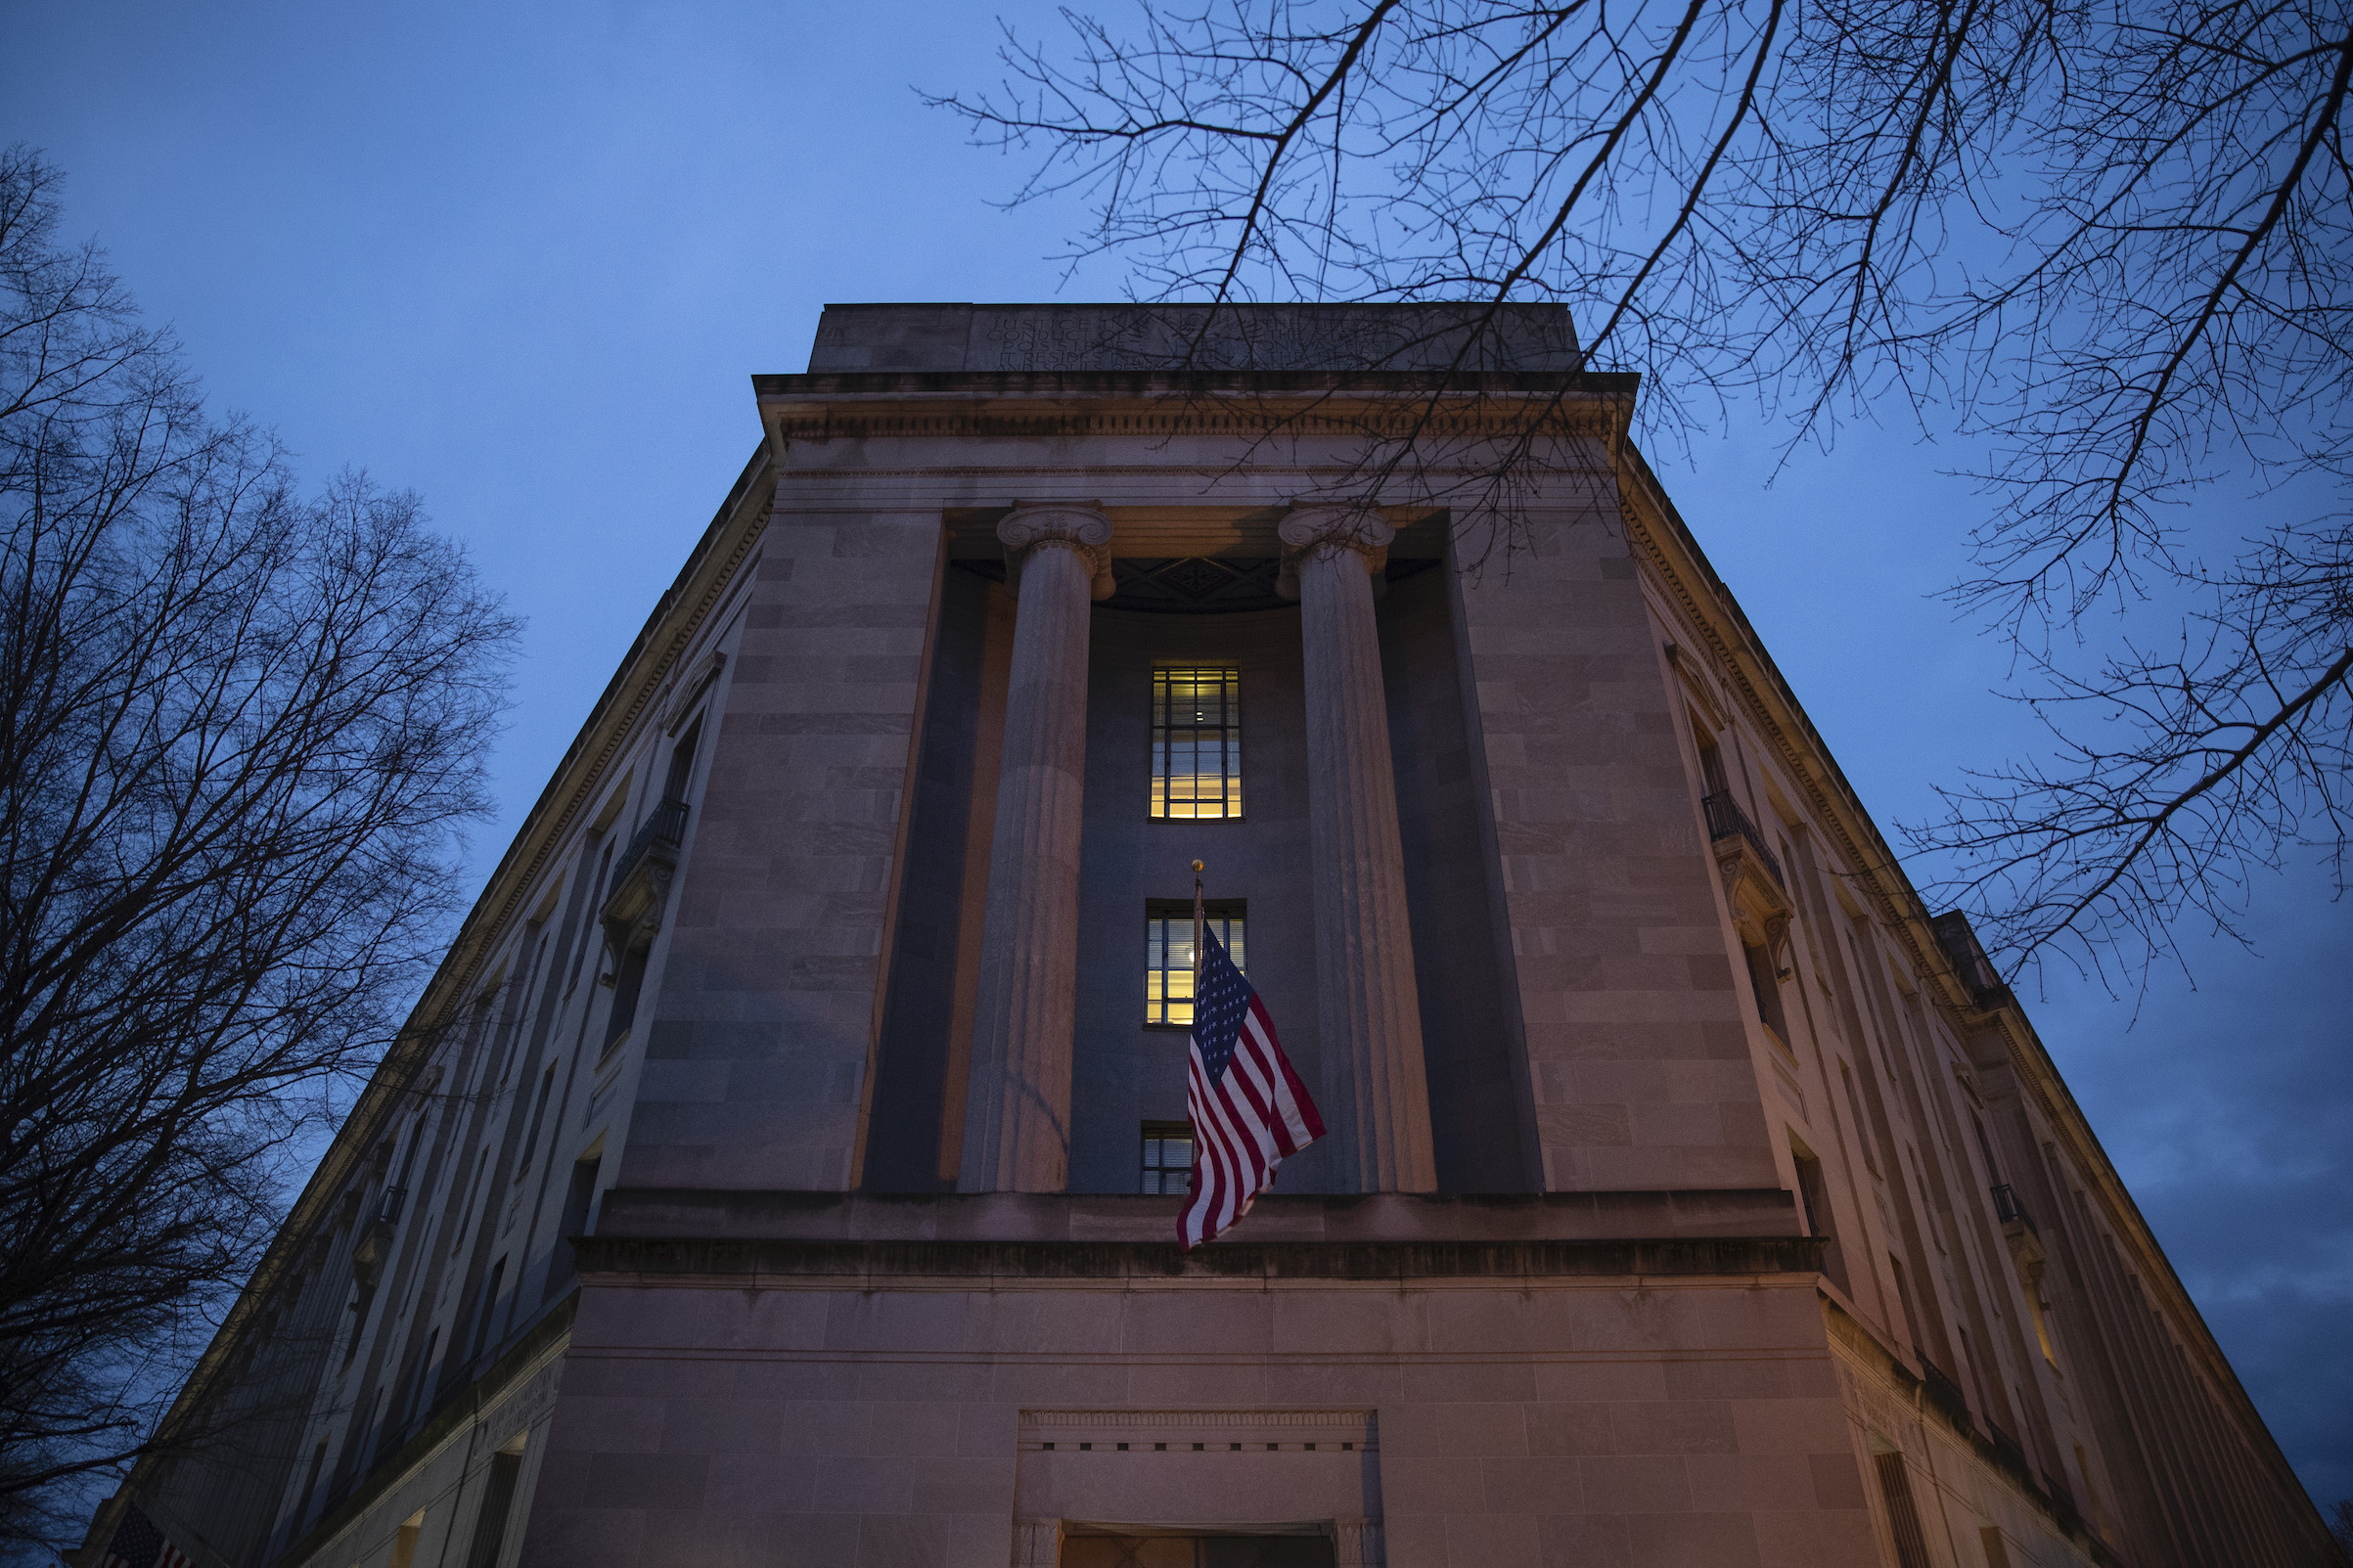 The Department of Justice stands in the early hours of Friday morning, March 22, 2019 in Washington, D.C.